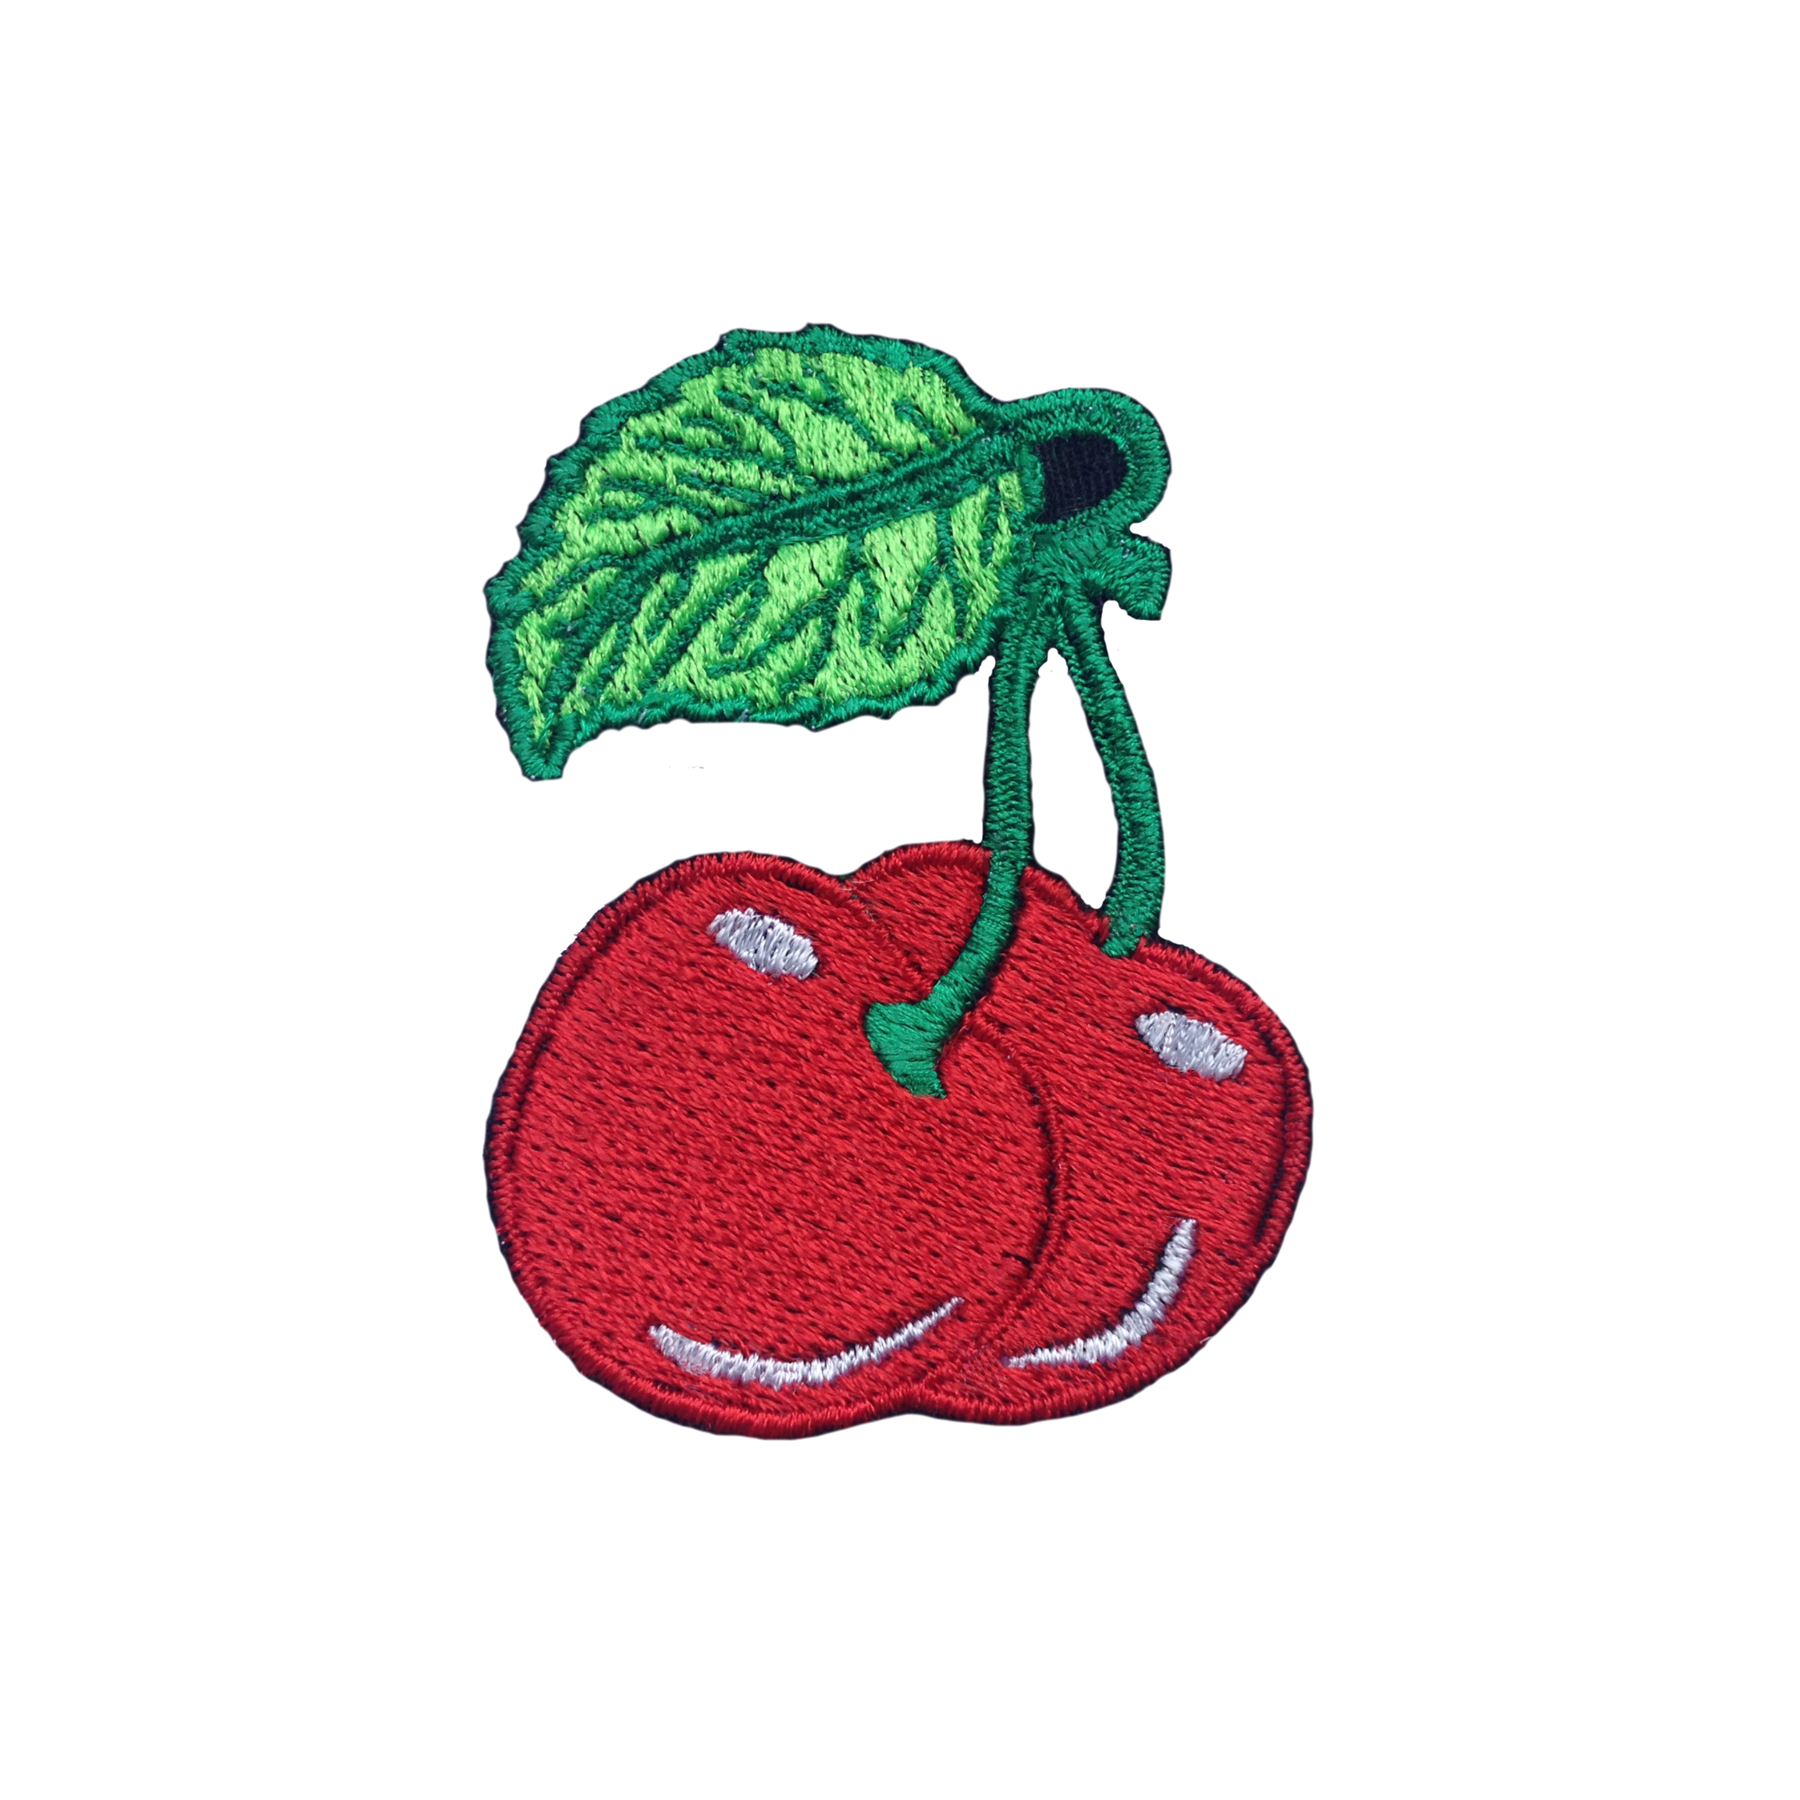 Red Cherry Patch Embroidered Applique Iron On Sew On Patch Badge